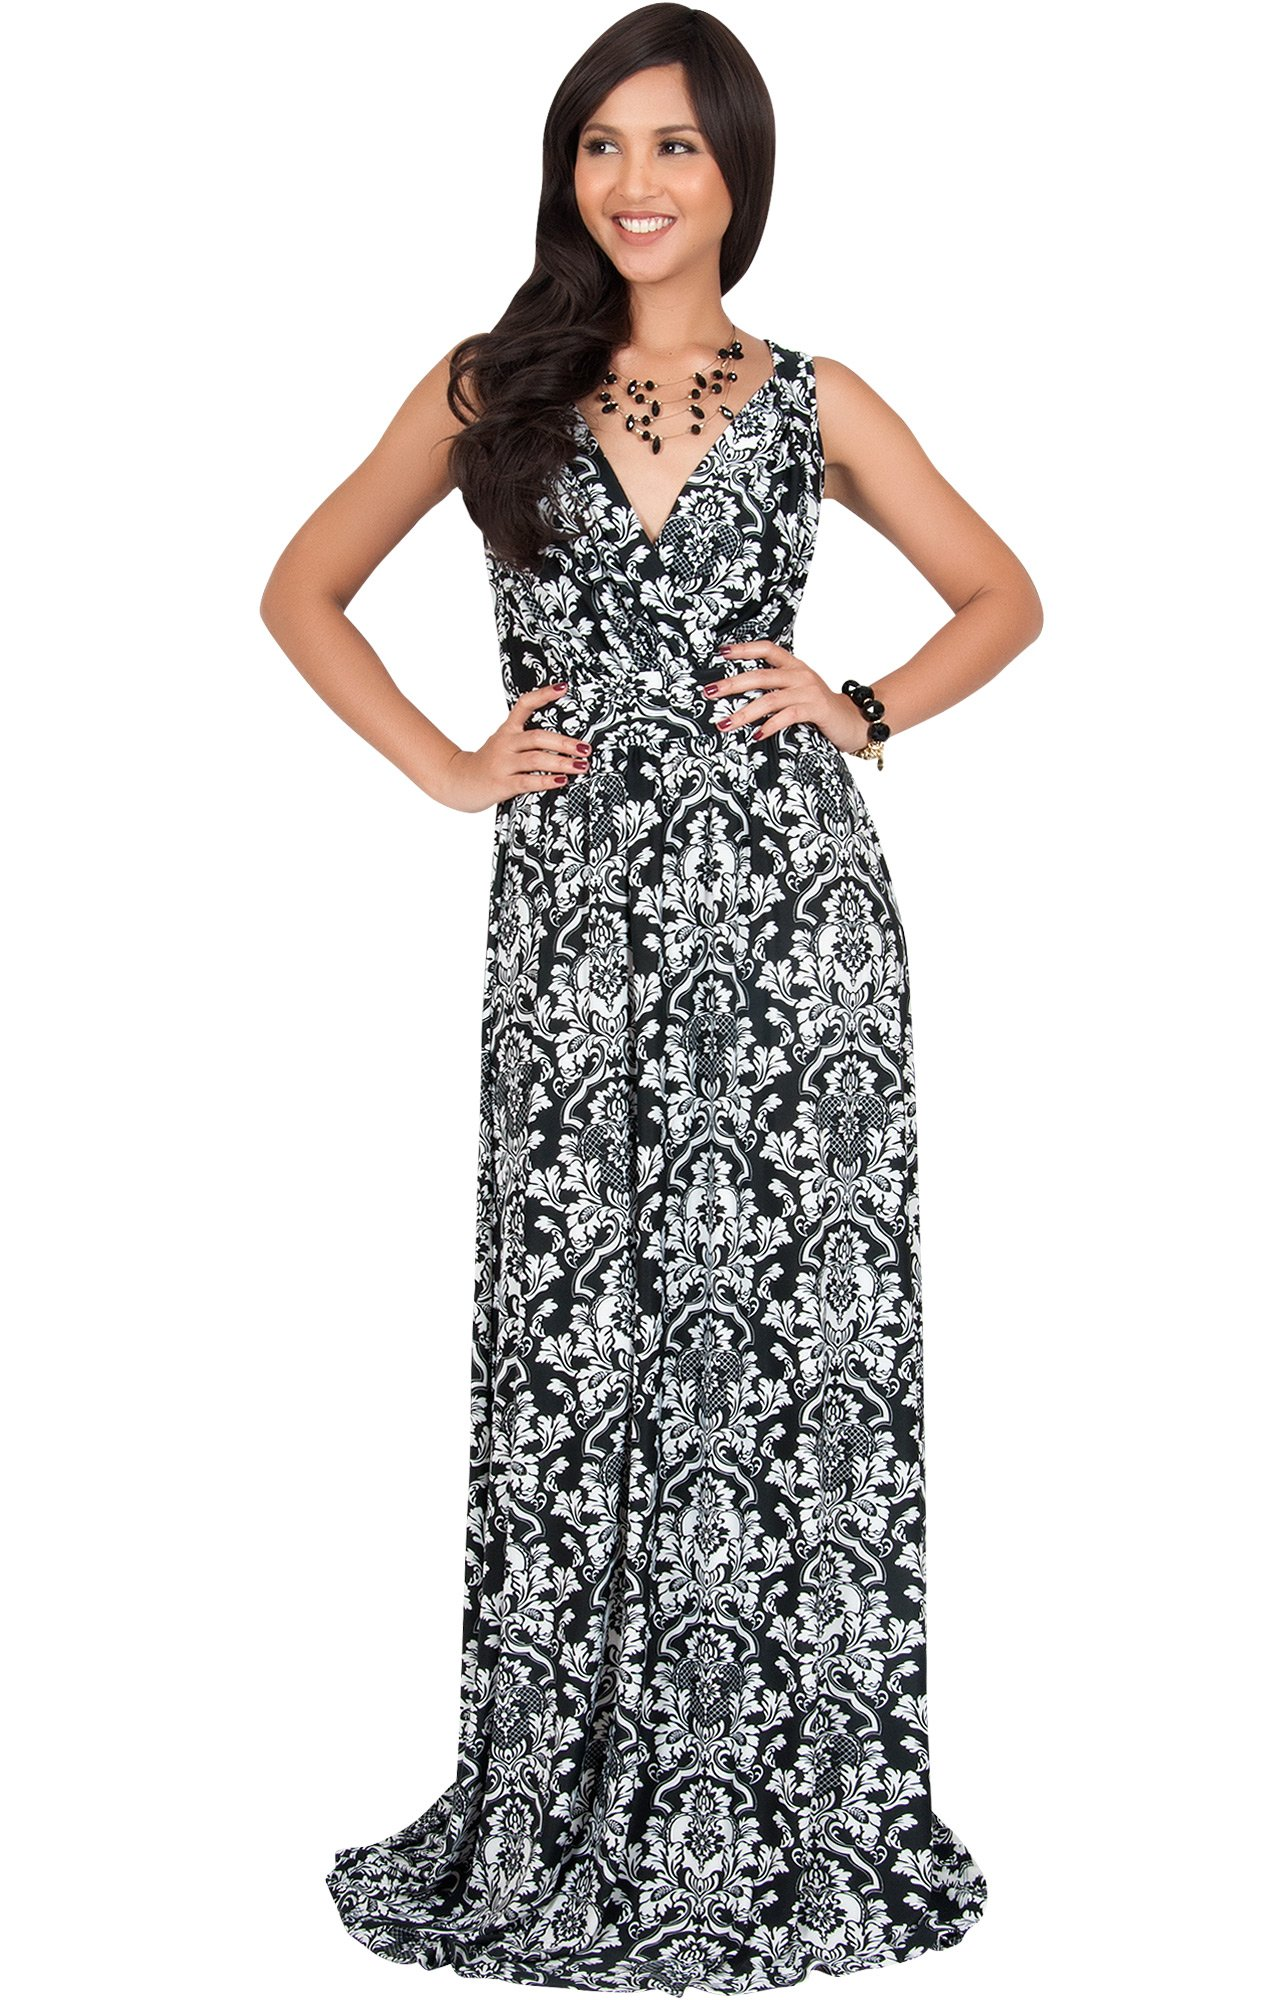 90892ca1656 KOH KOH Plus Size Womens Long Sleeveless Stretchy Flowy Cute Spring Summer  Sundress Sun Vintage Casual Floral Print Work Party Jersey Sexy Gown Gowns  Maxi ...